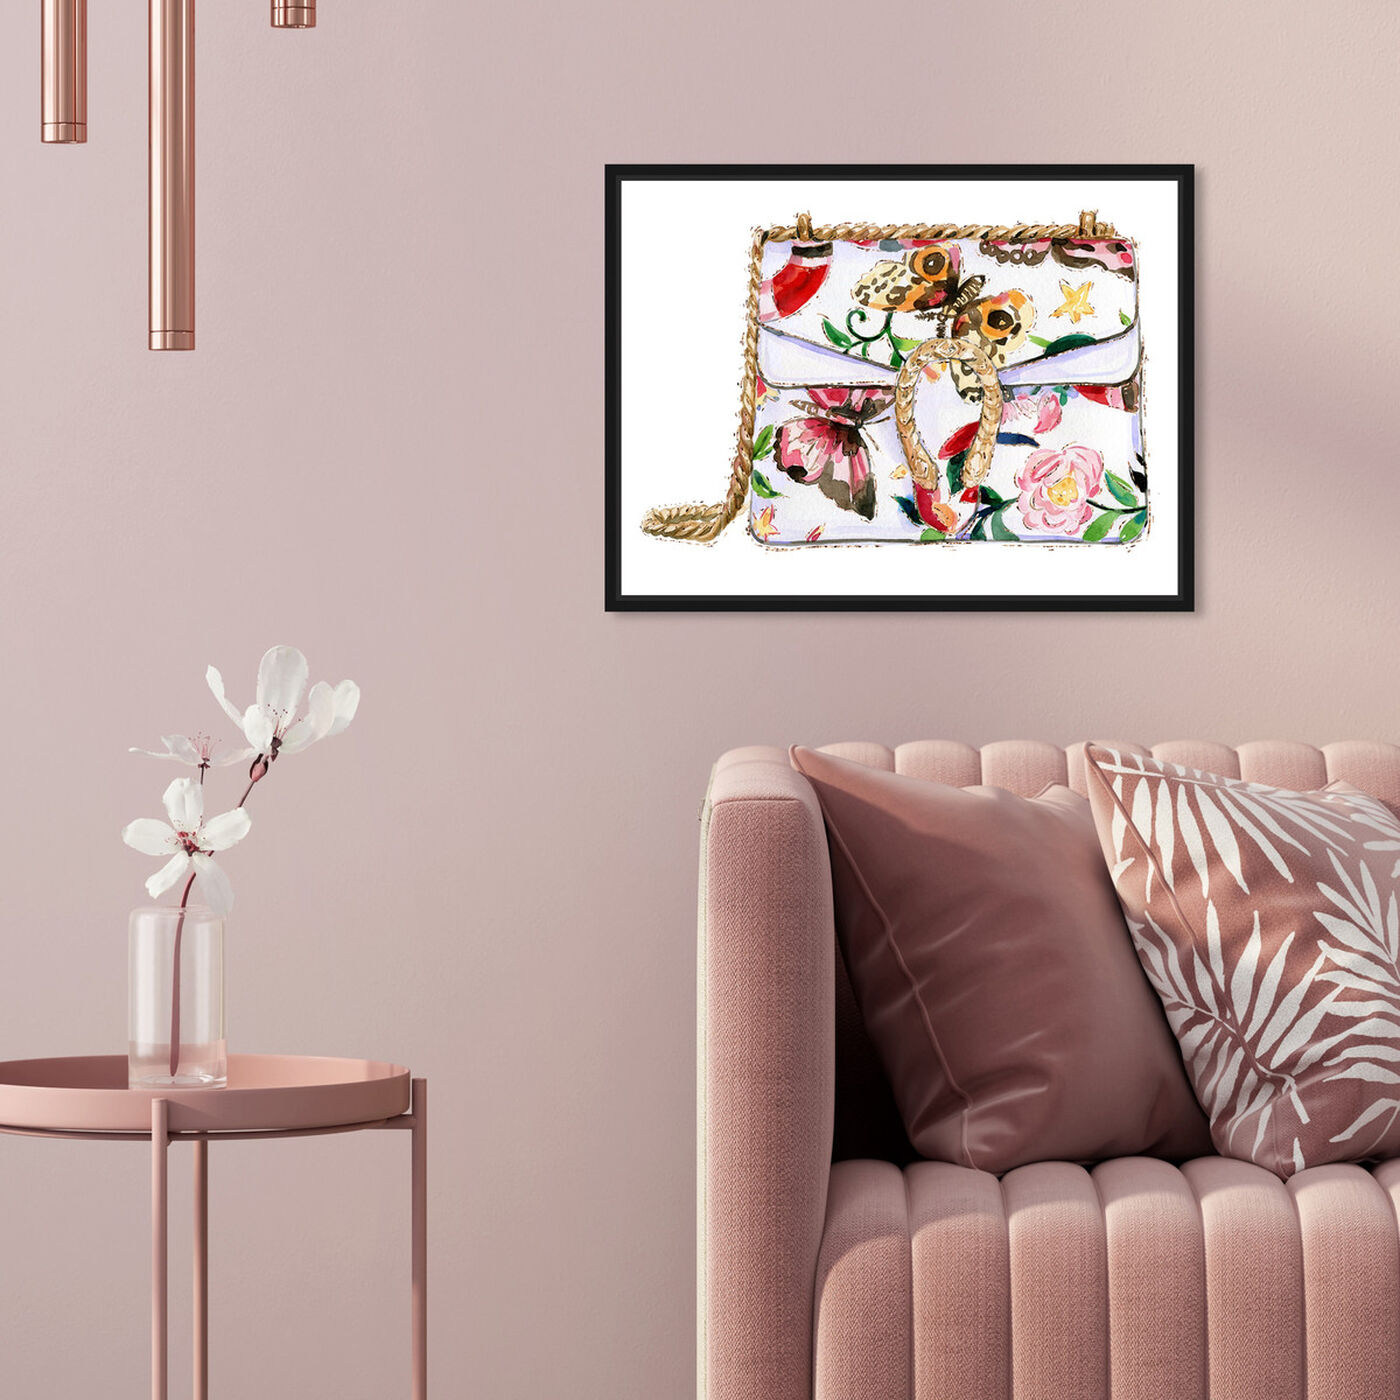 Hanging view of Butterfly Floral Bag featuring fashion and glam and handbags art.